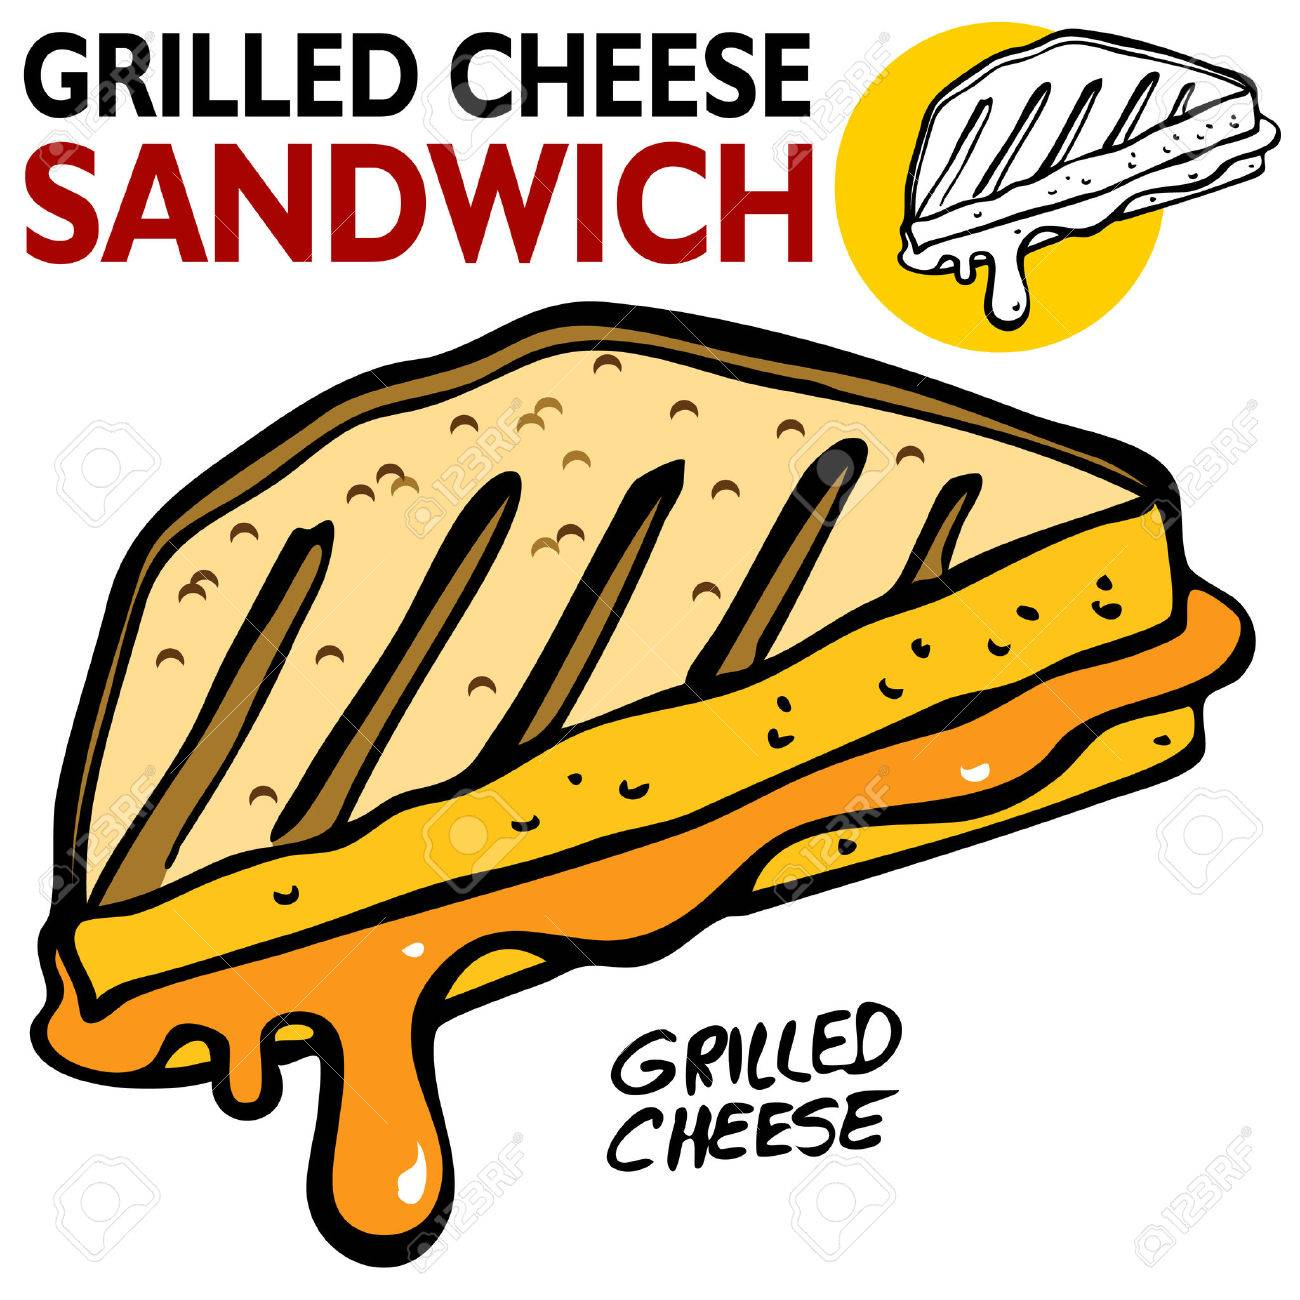 an image of a grilled cheese sandwich royalty free cliparts rh 123rf com national grilled cheese day clipart soup and grilled cheese clipart